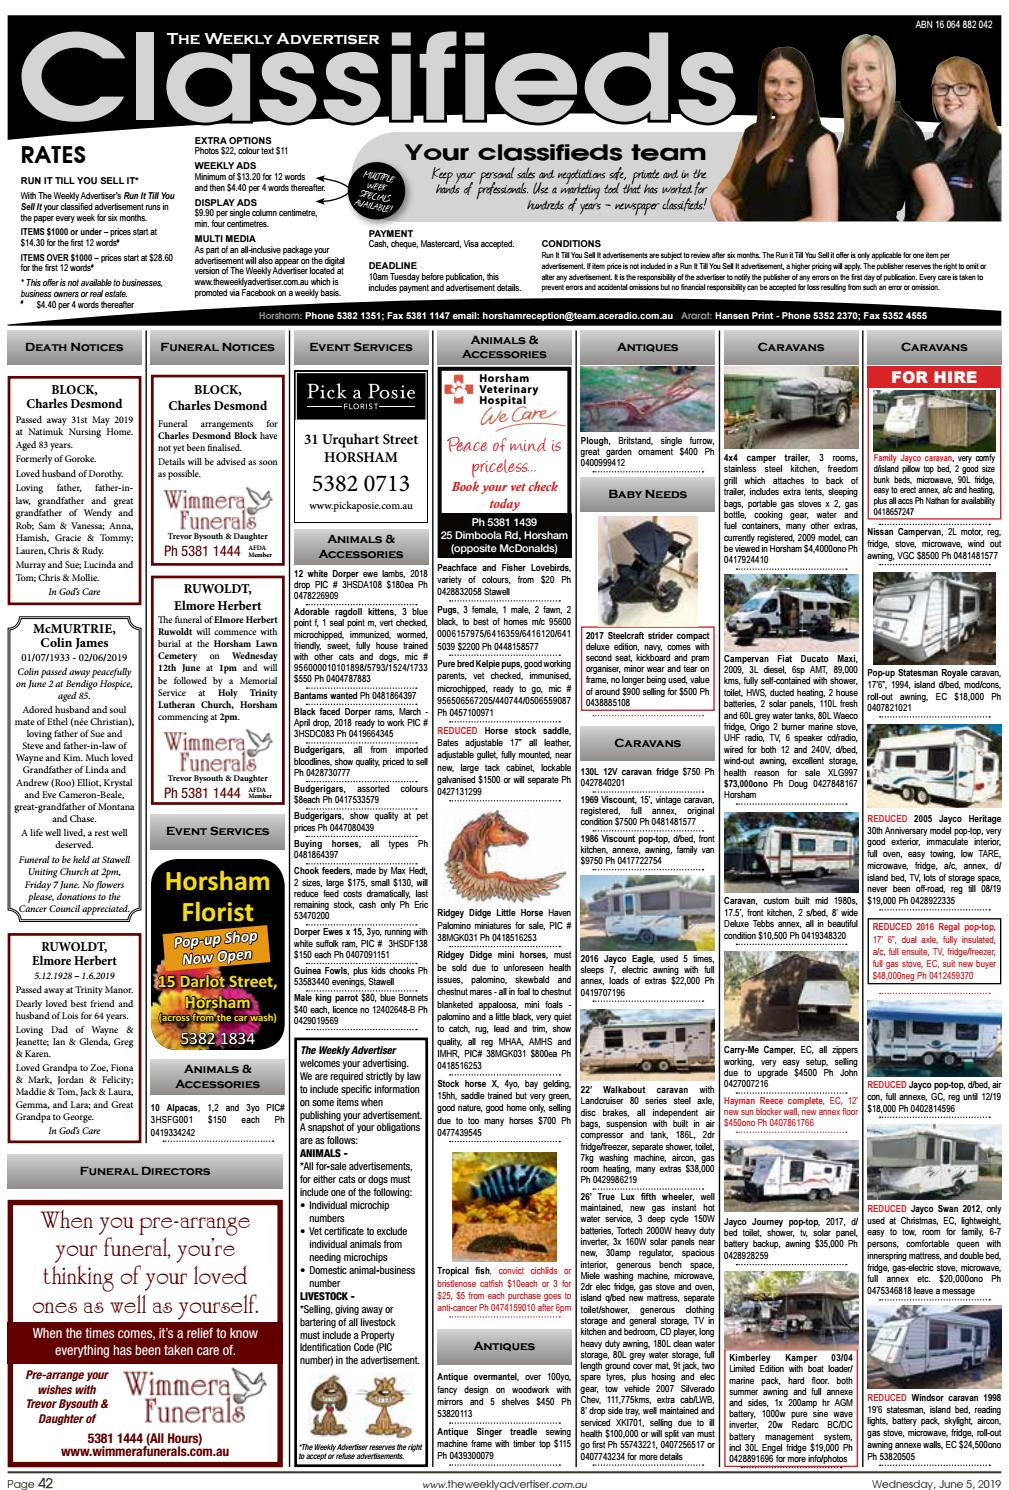 The Weekly Advertiser - Wednesday, June 5, 2019 by The